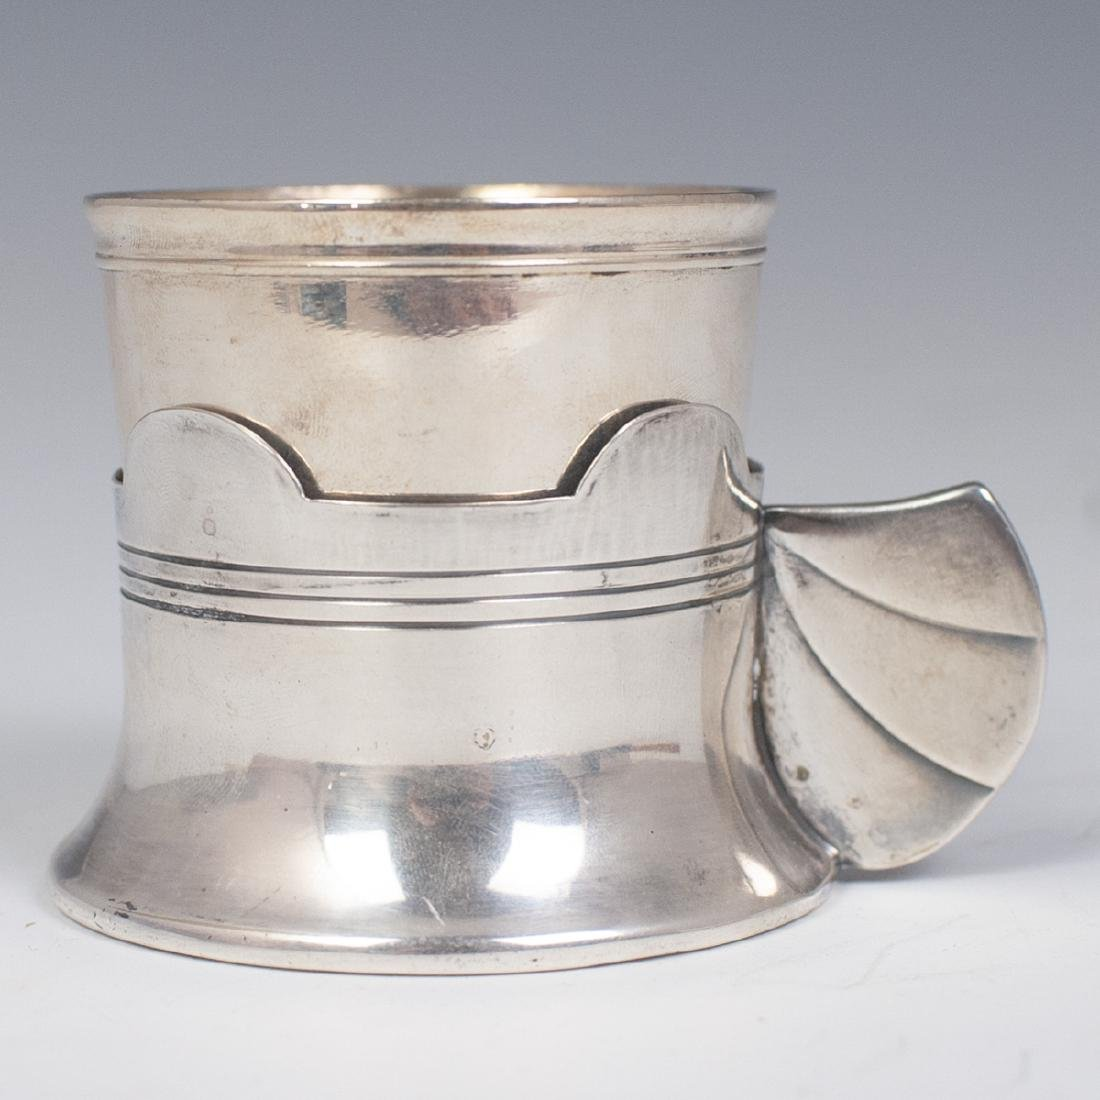 Christofle Silver Plated 2 Pc. Cup Set